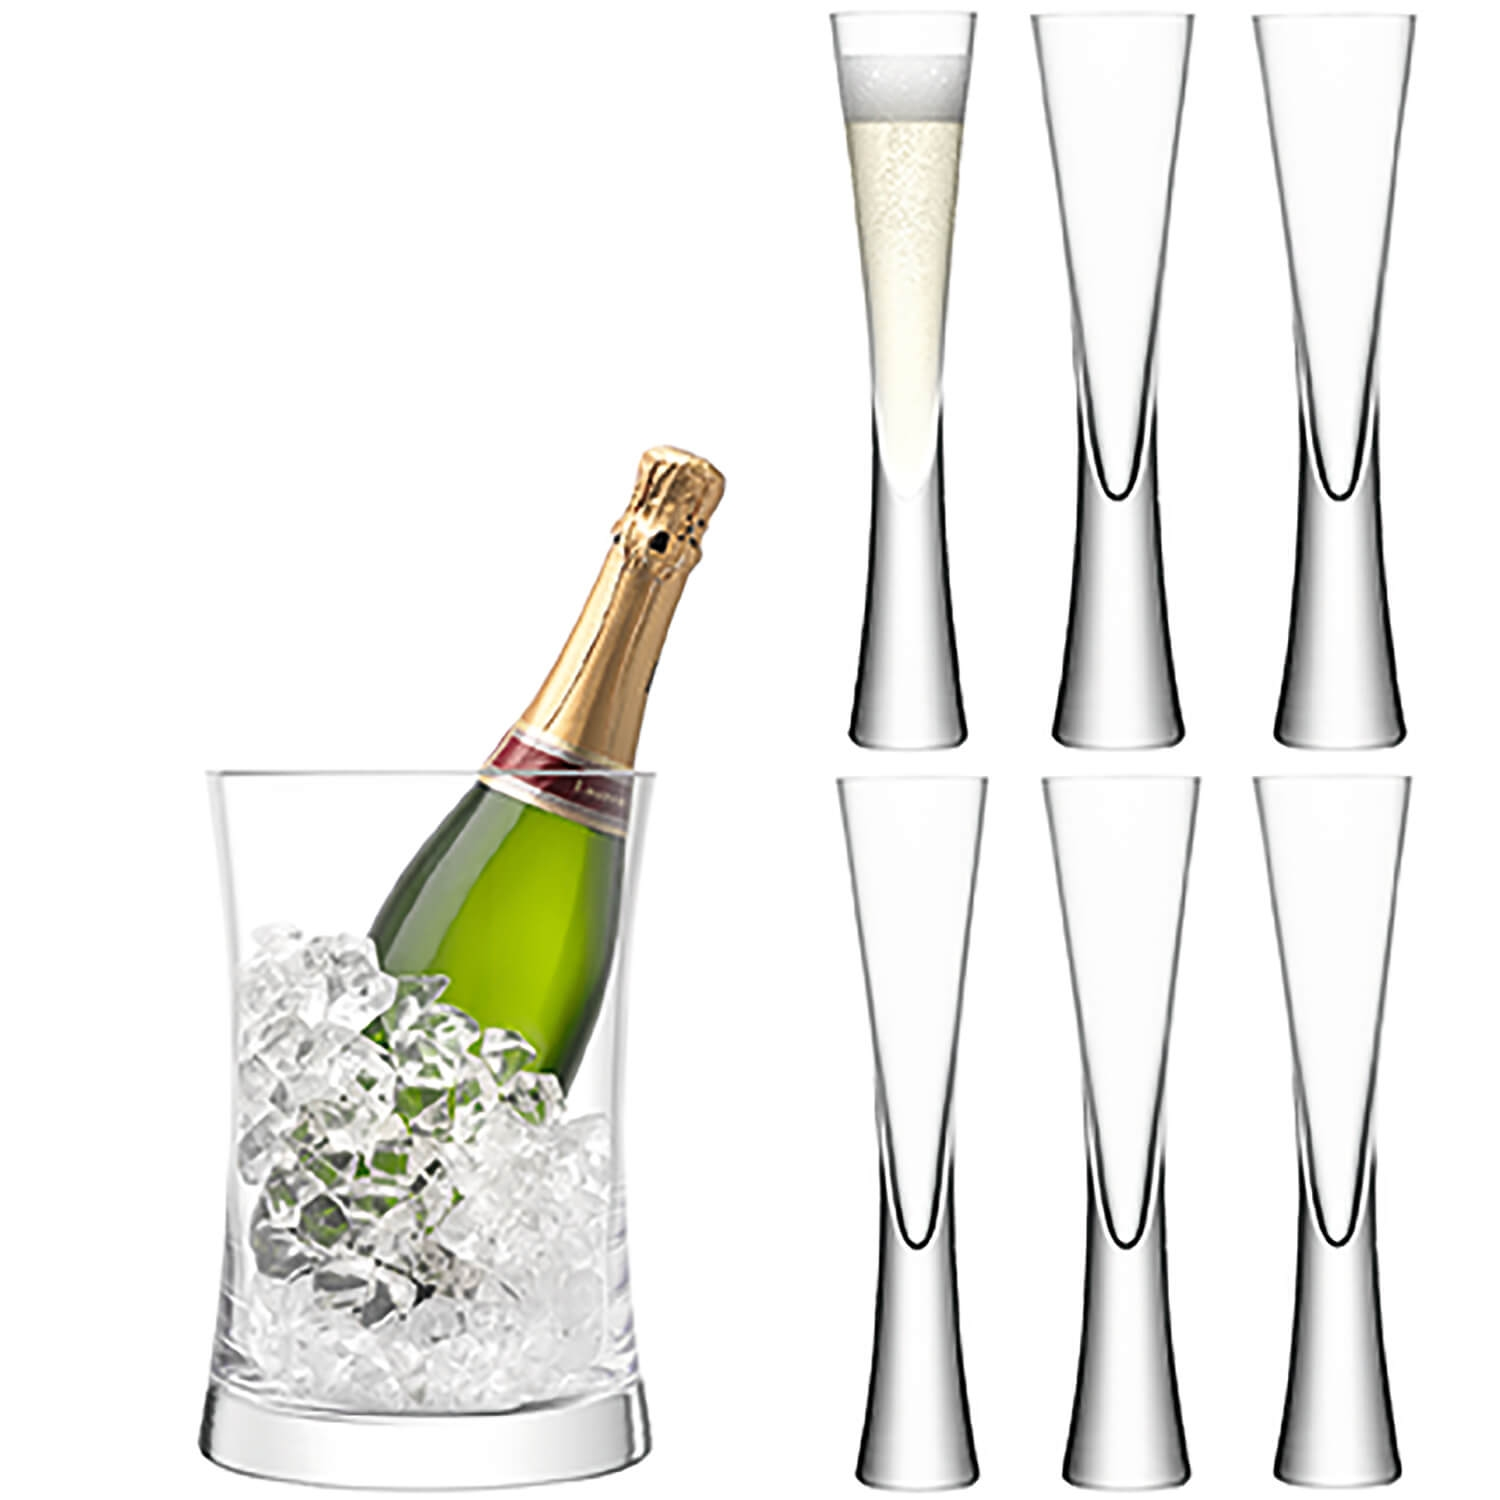 Image of Lsa Moya Champagne Serving Set With Bucket